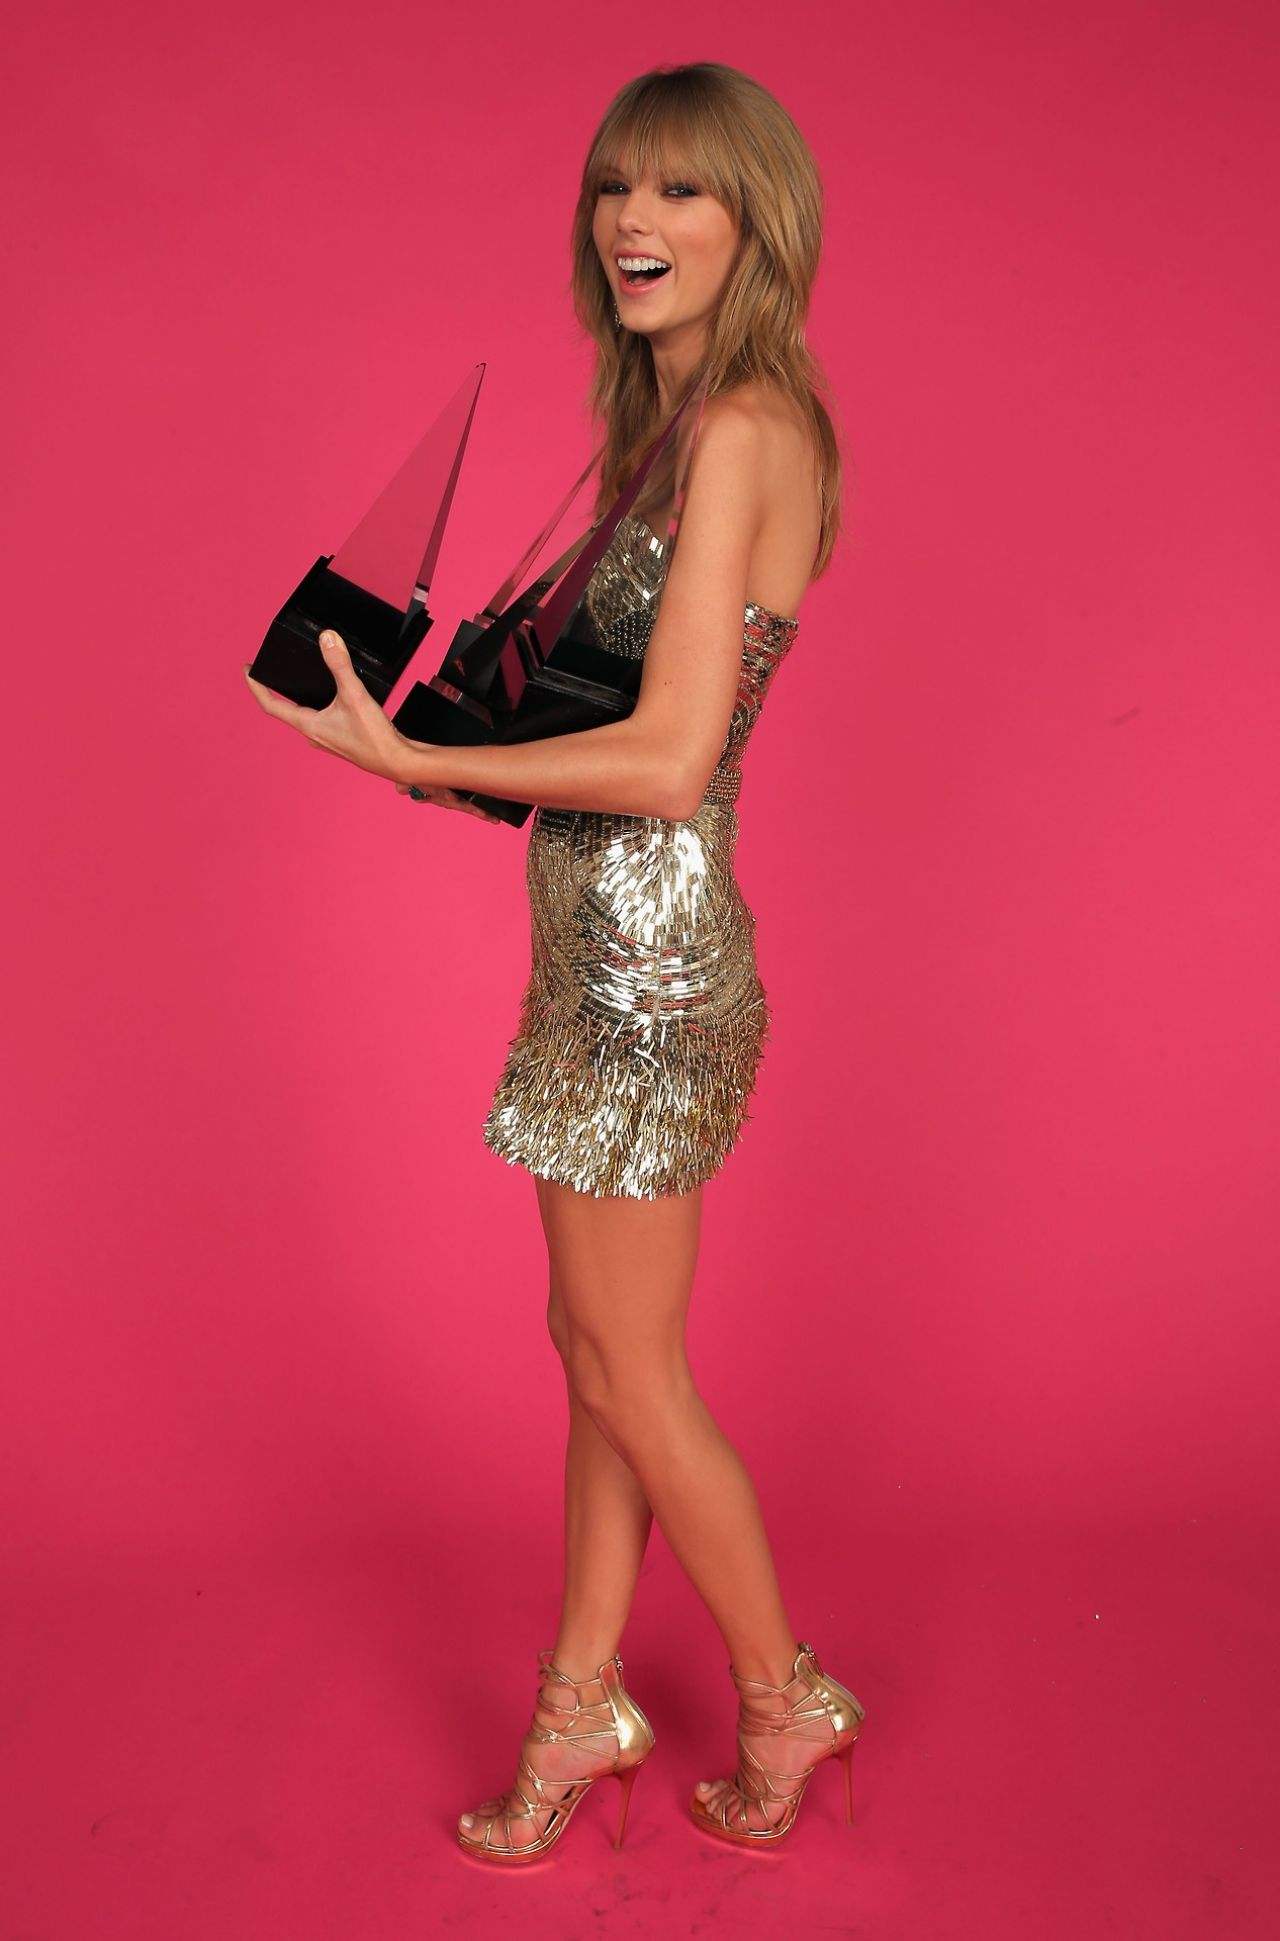 Taylor Swift Photoshoot 2013 American Music Awards Portraits